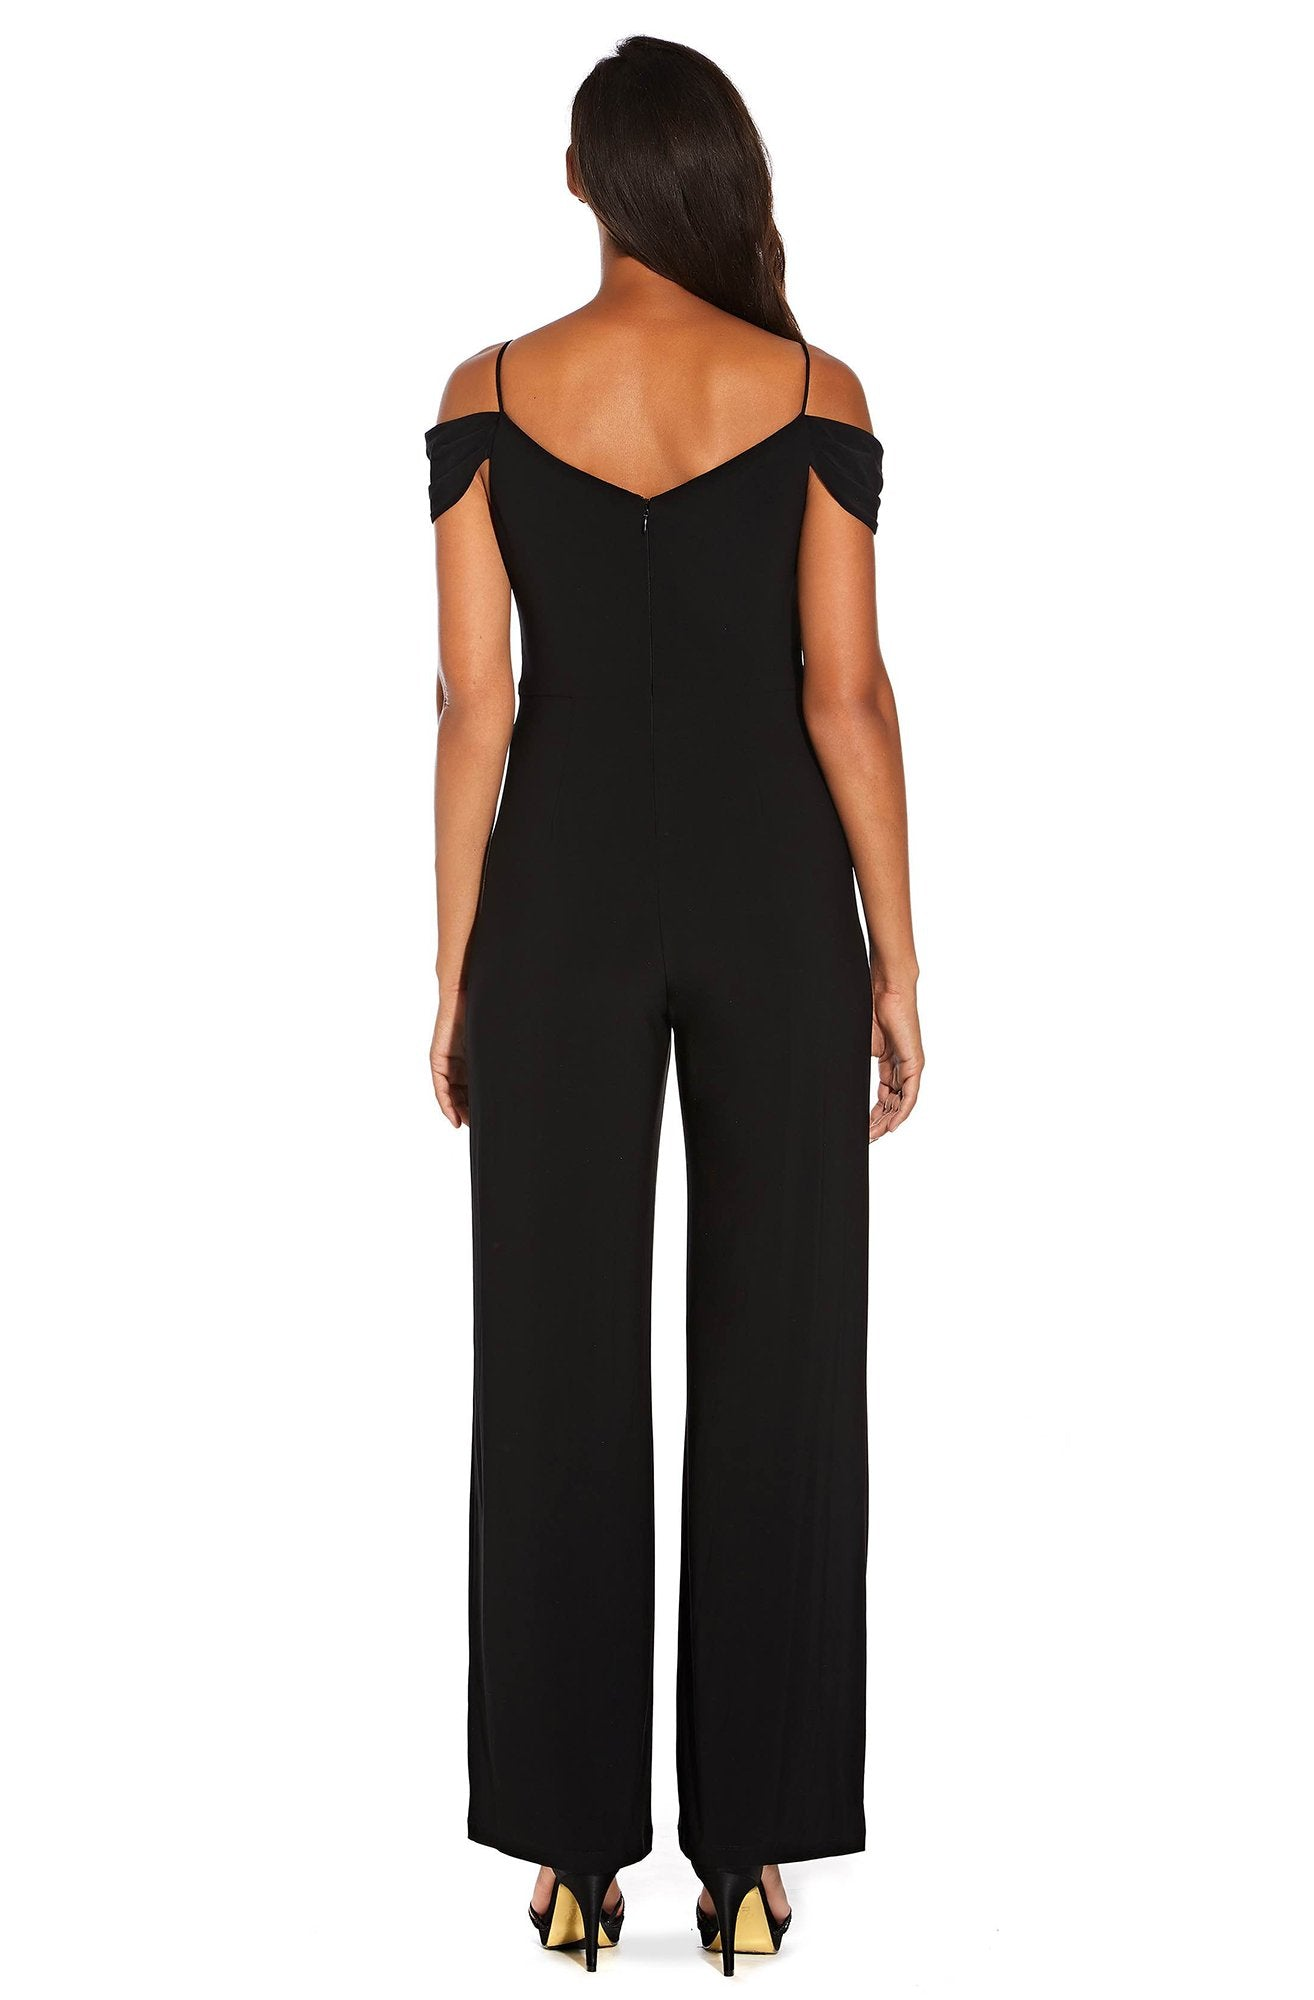 Adrianna Papell - AP1E206048 Gathered V-neck Jumpsuit In Black